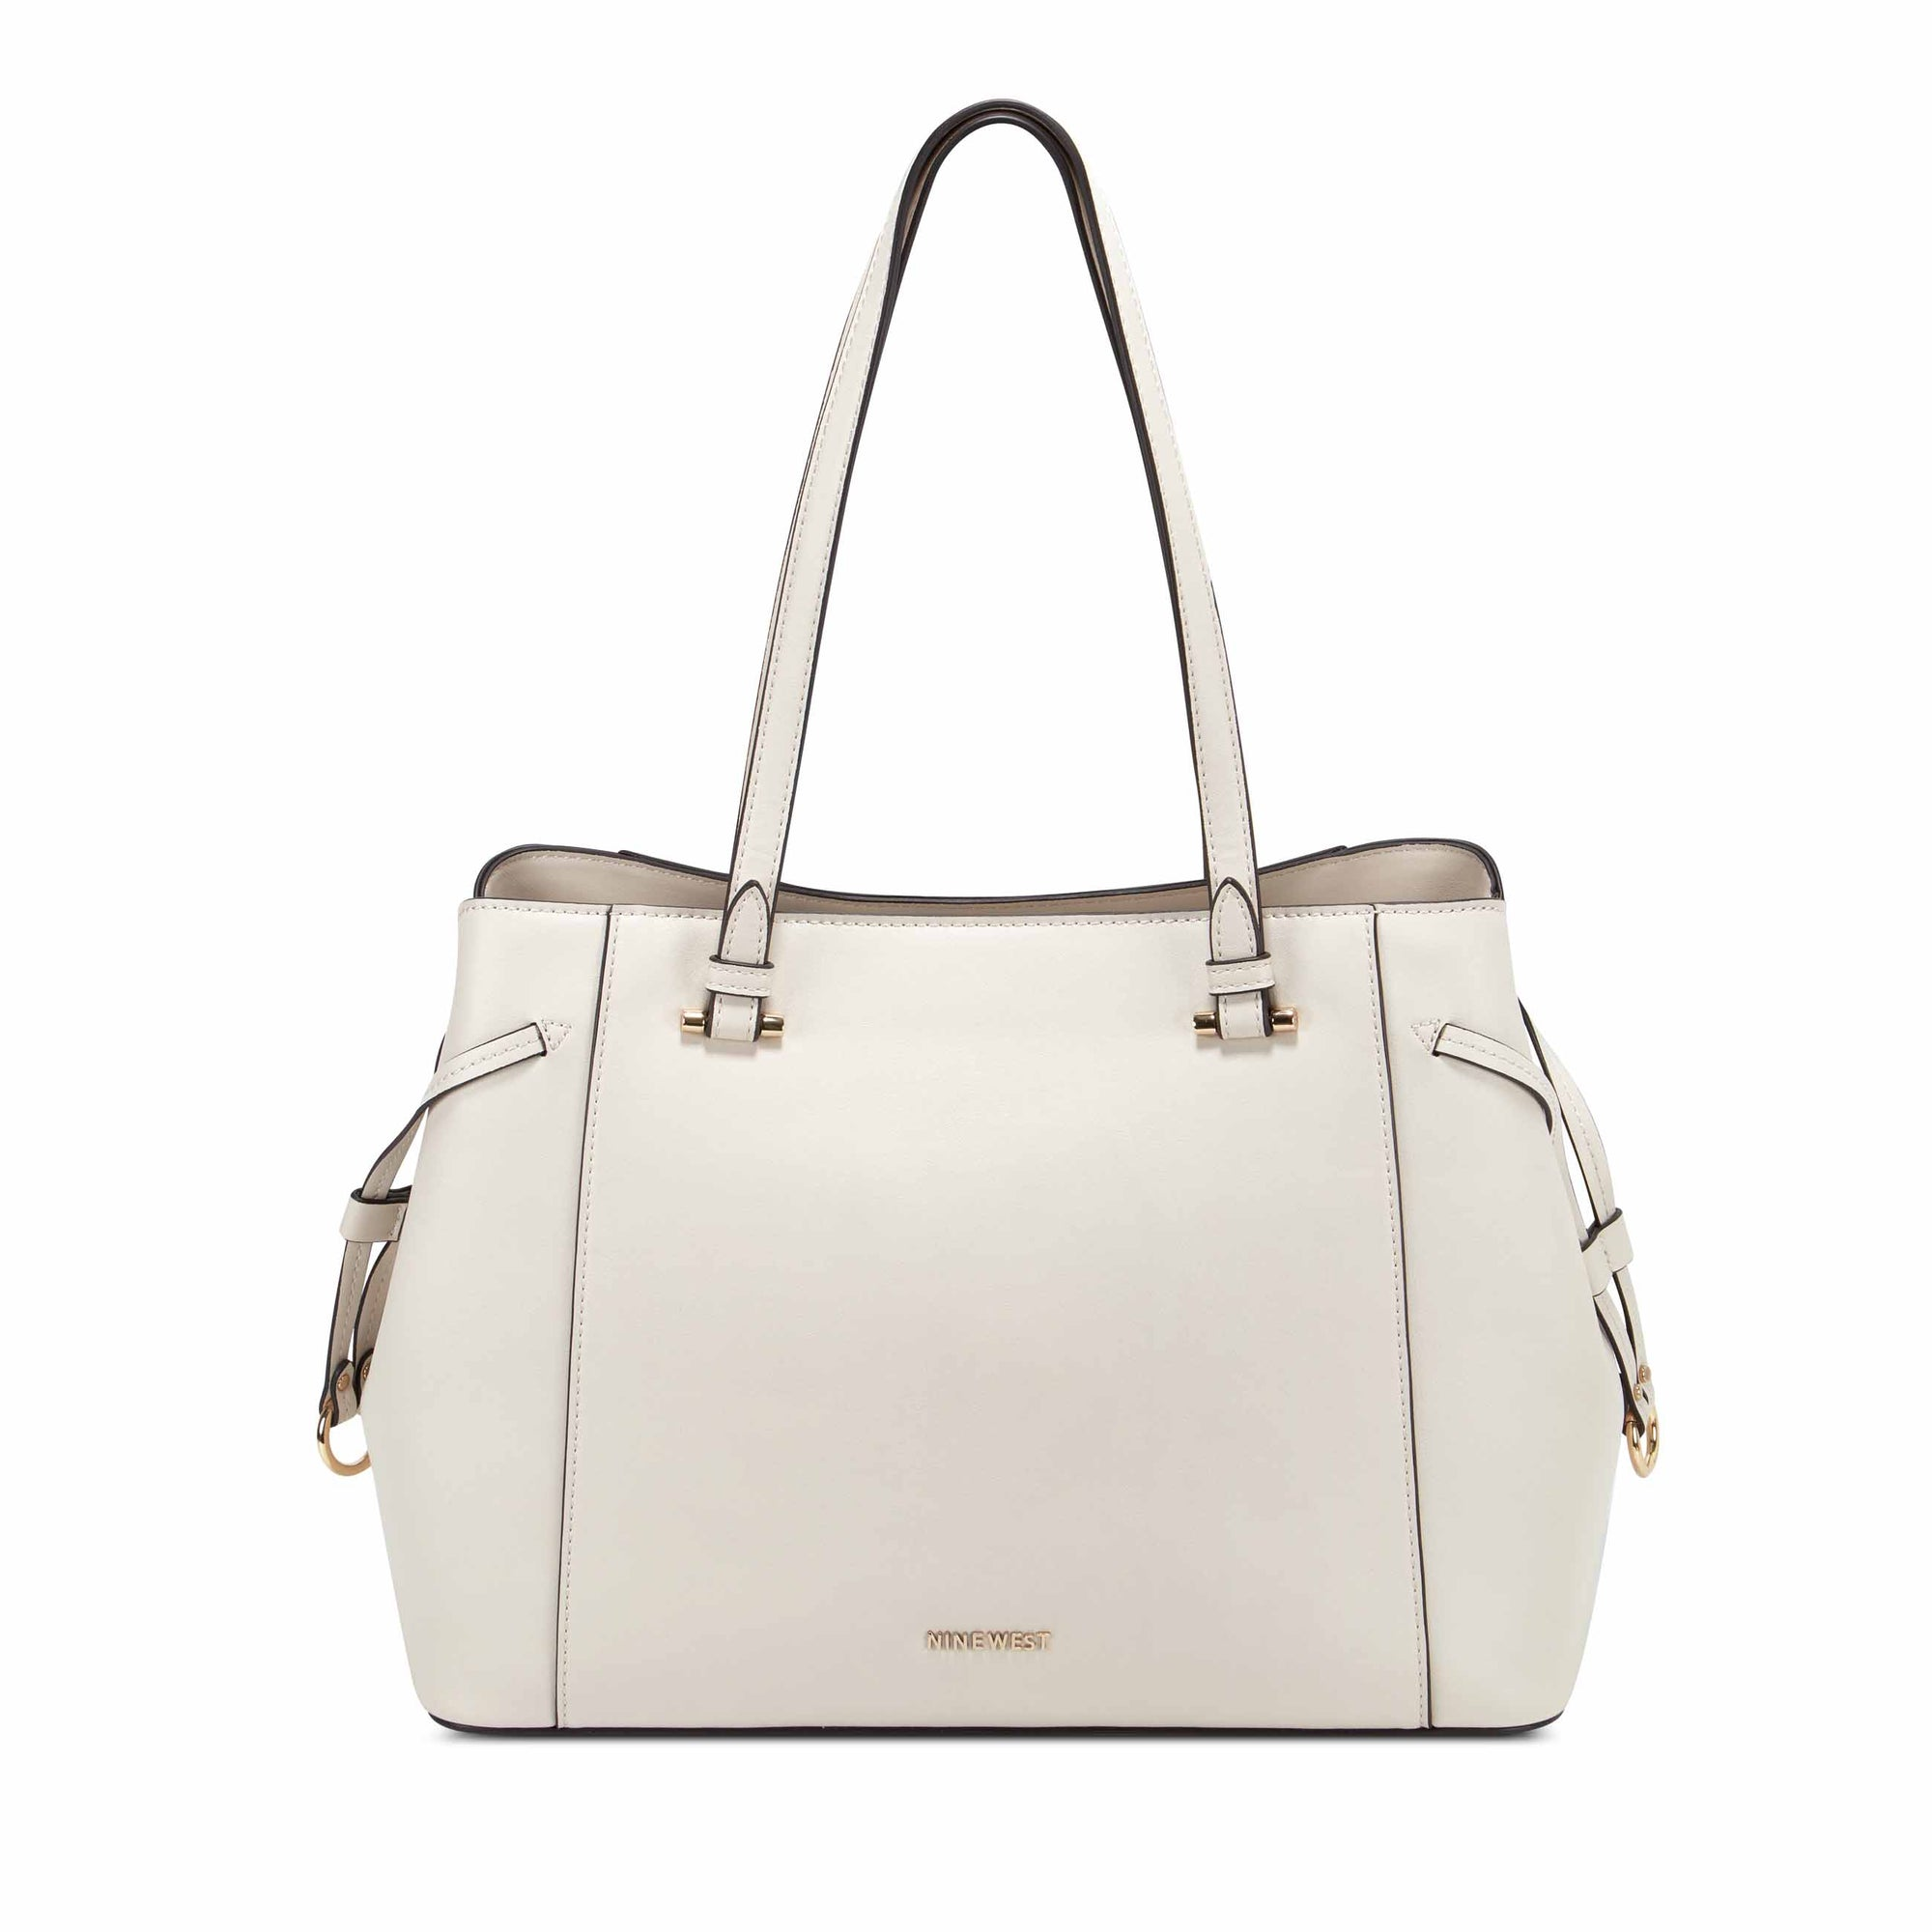 Monroe Shoulder Satchel